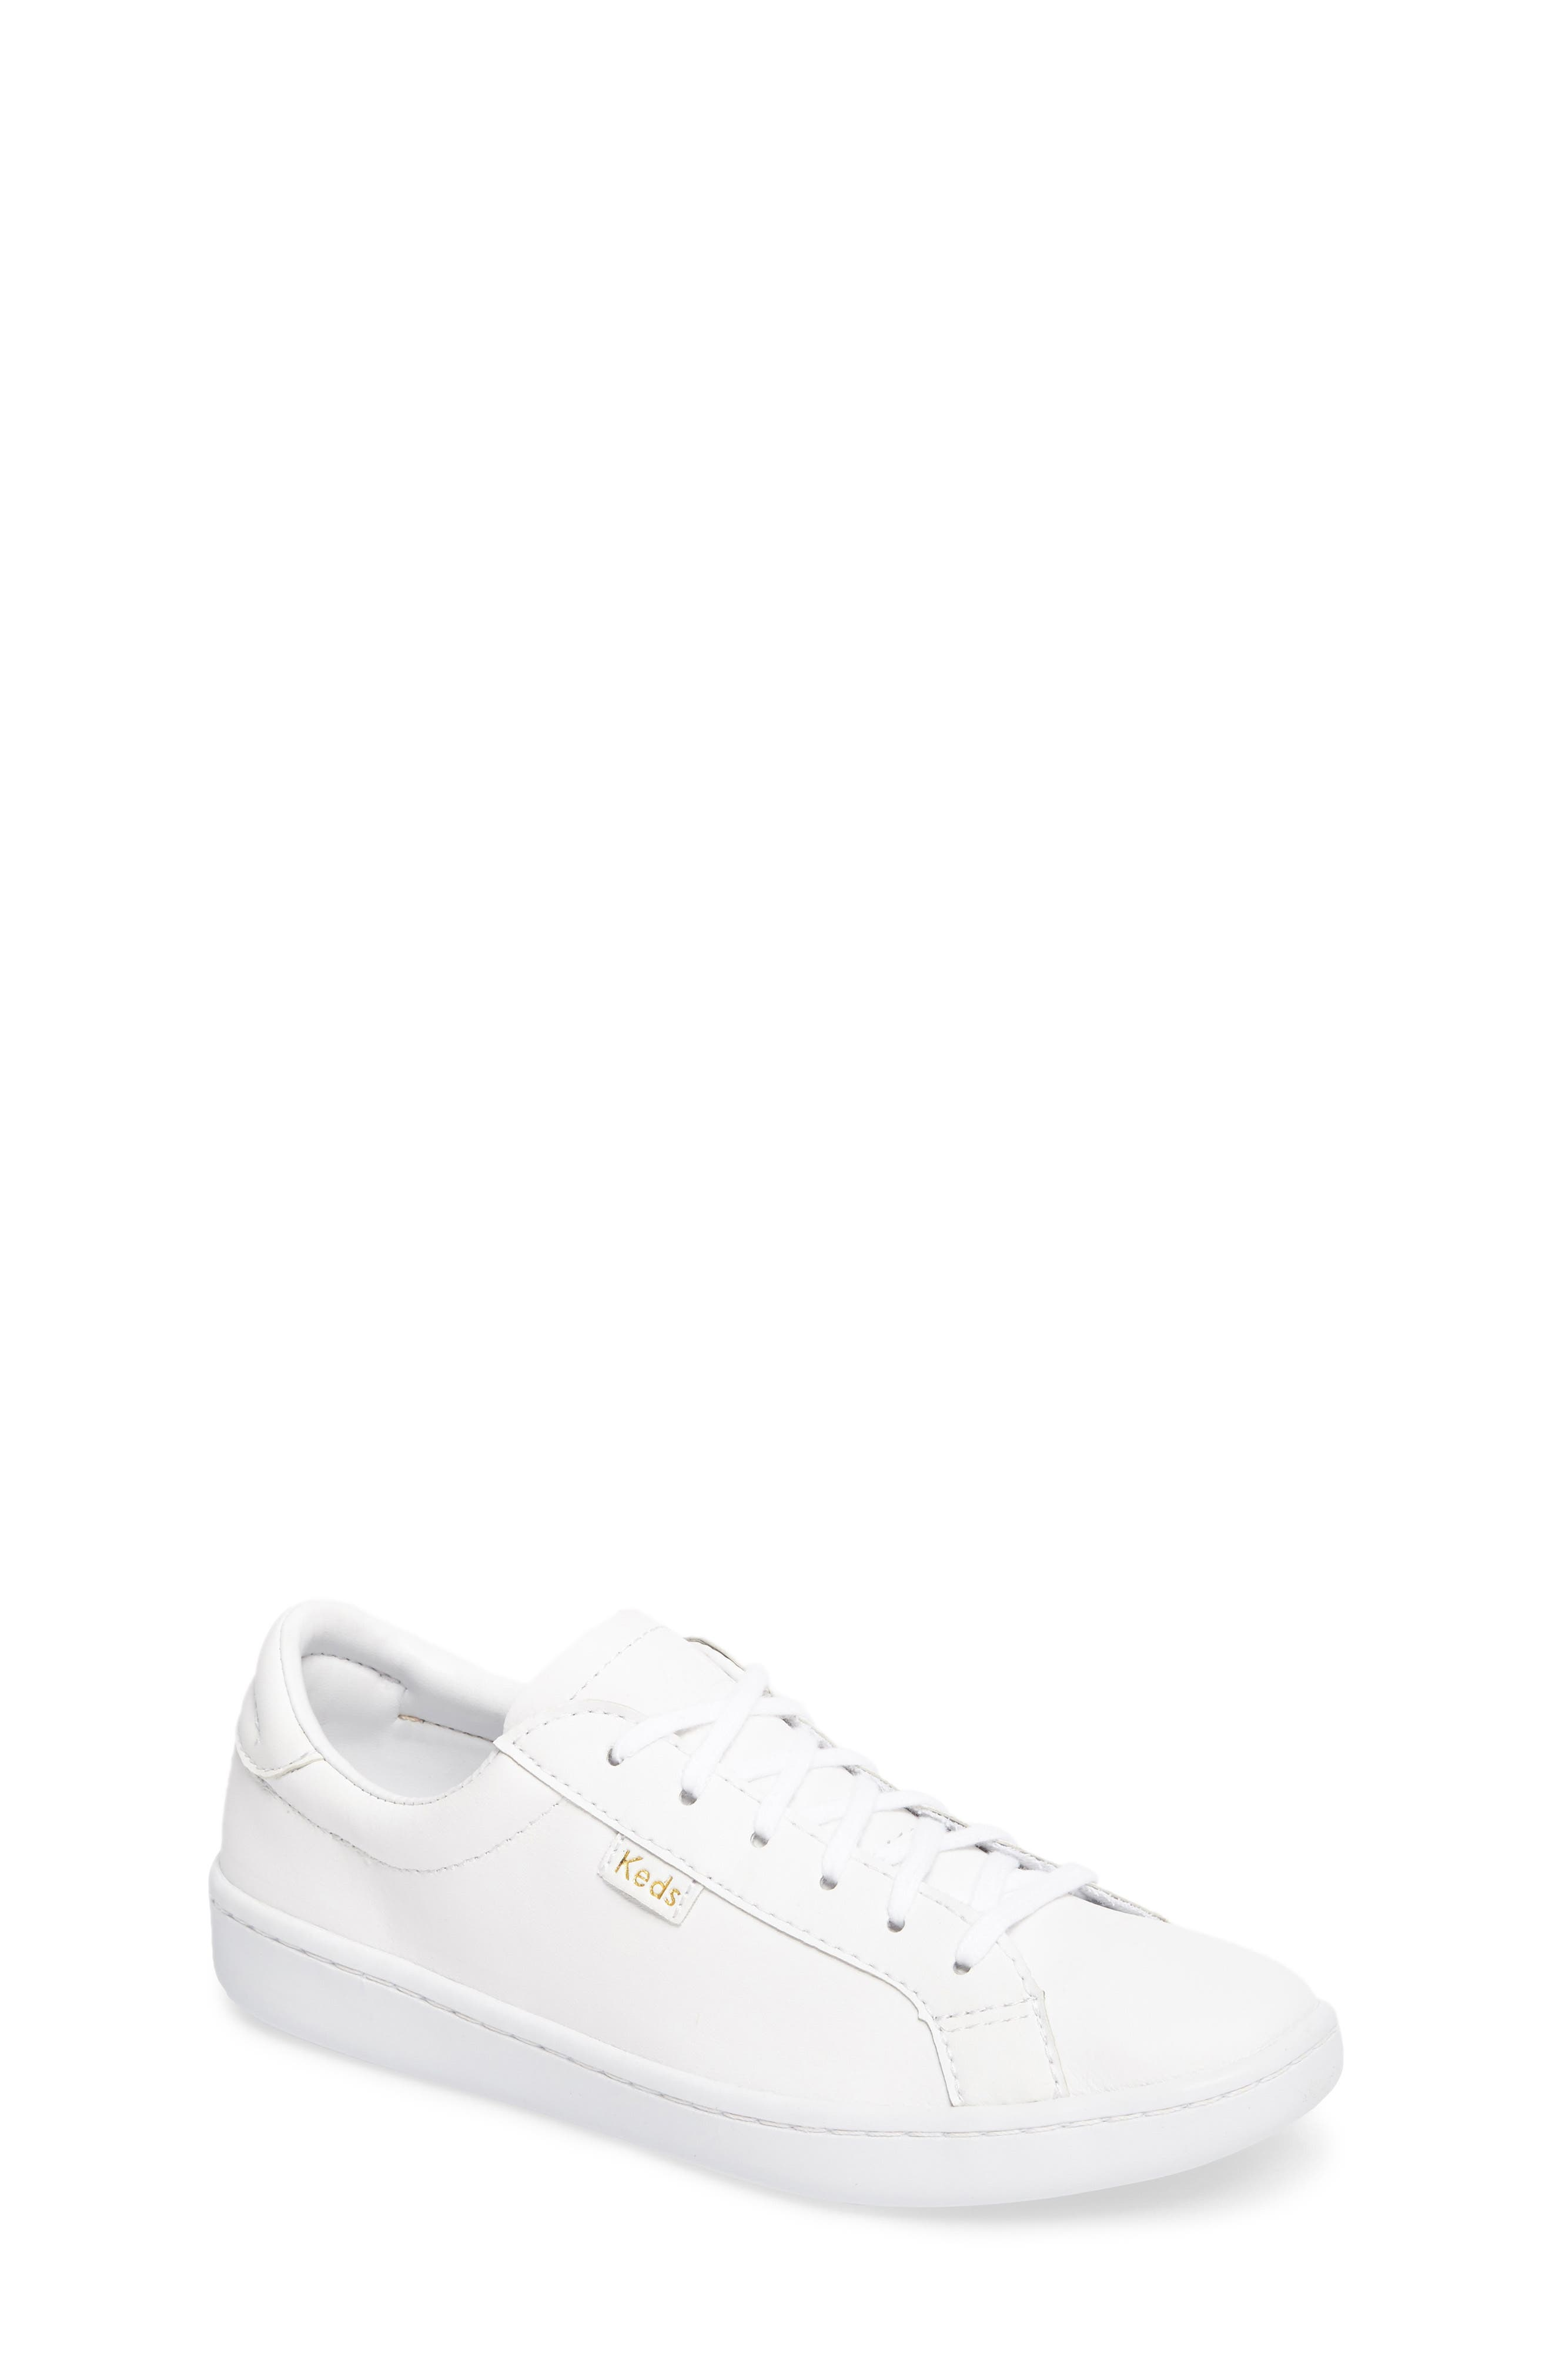 Ace Low Top Sneaker,                             Main thumbnail 1, color,                             100